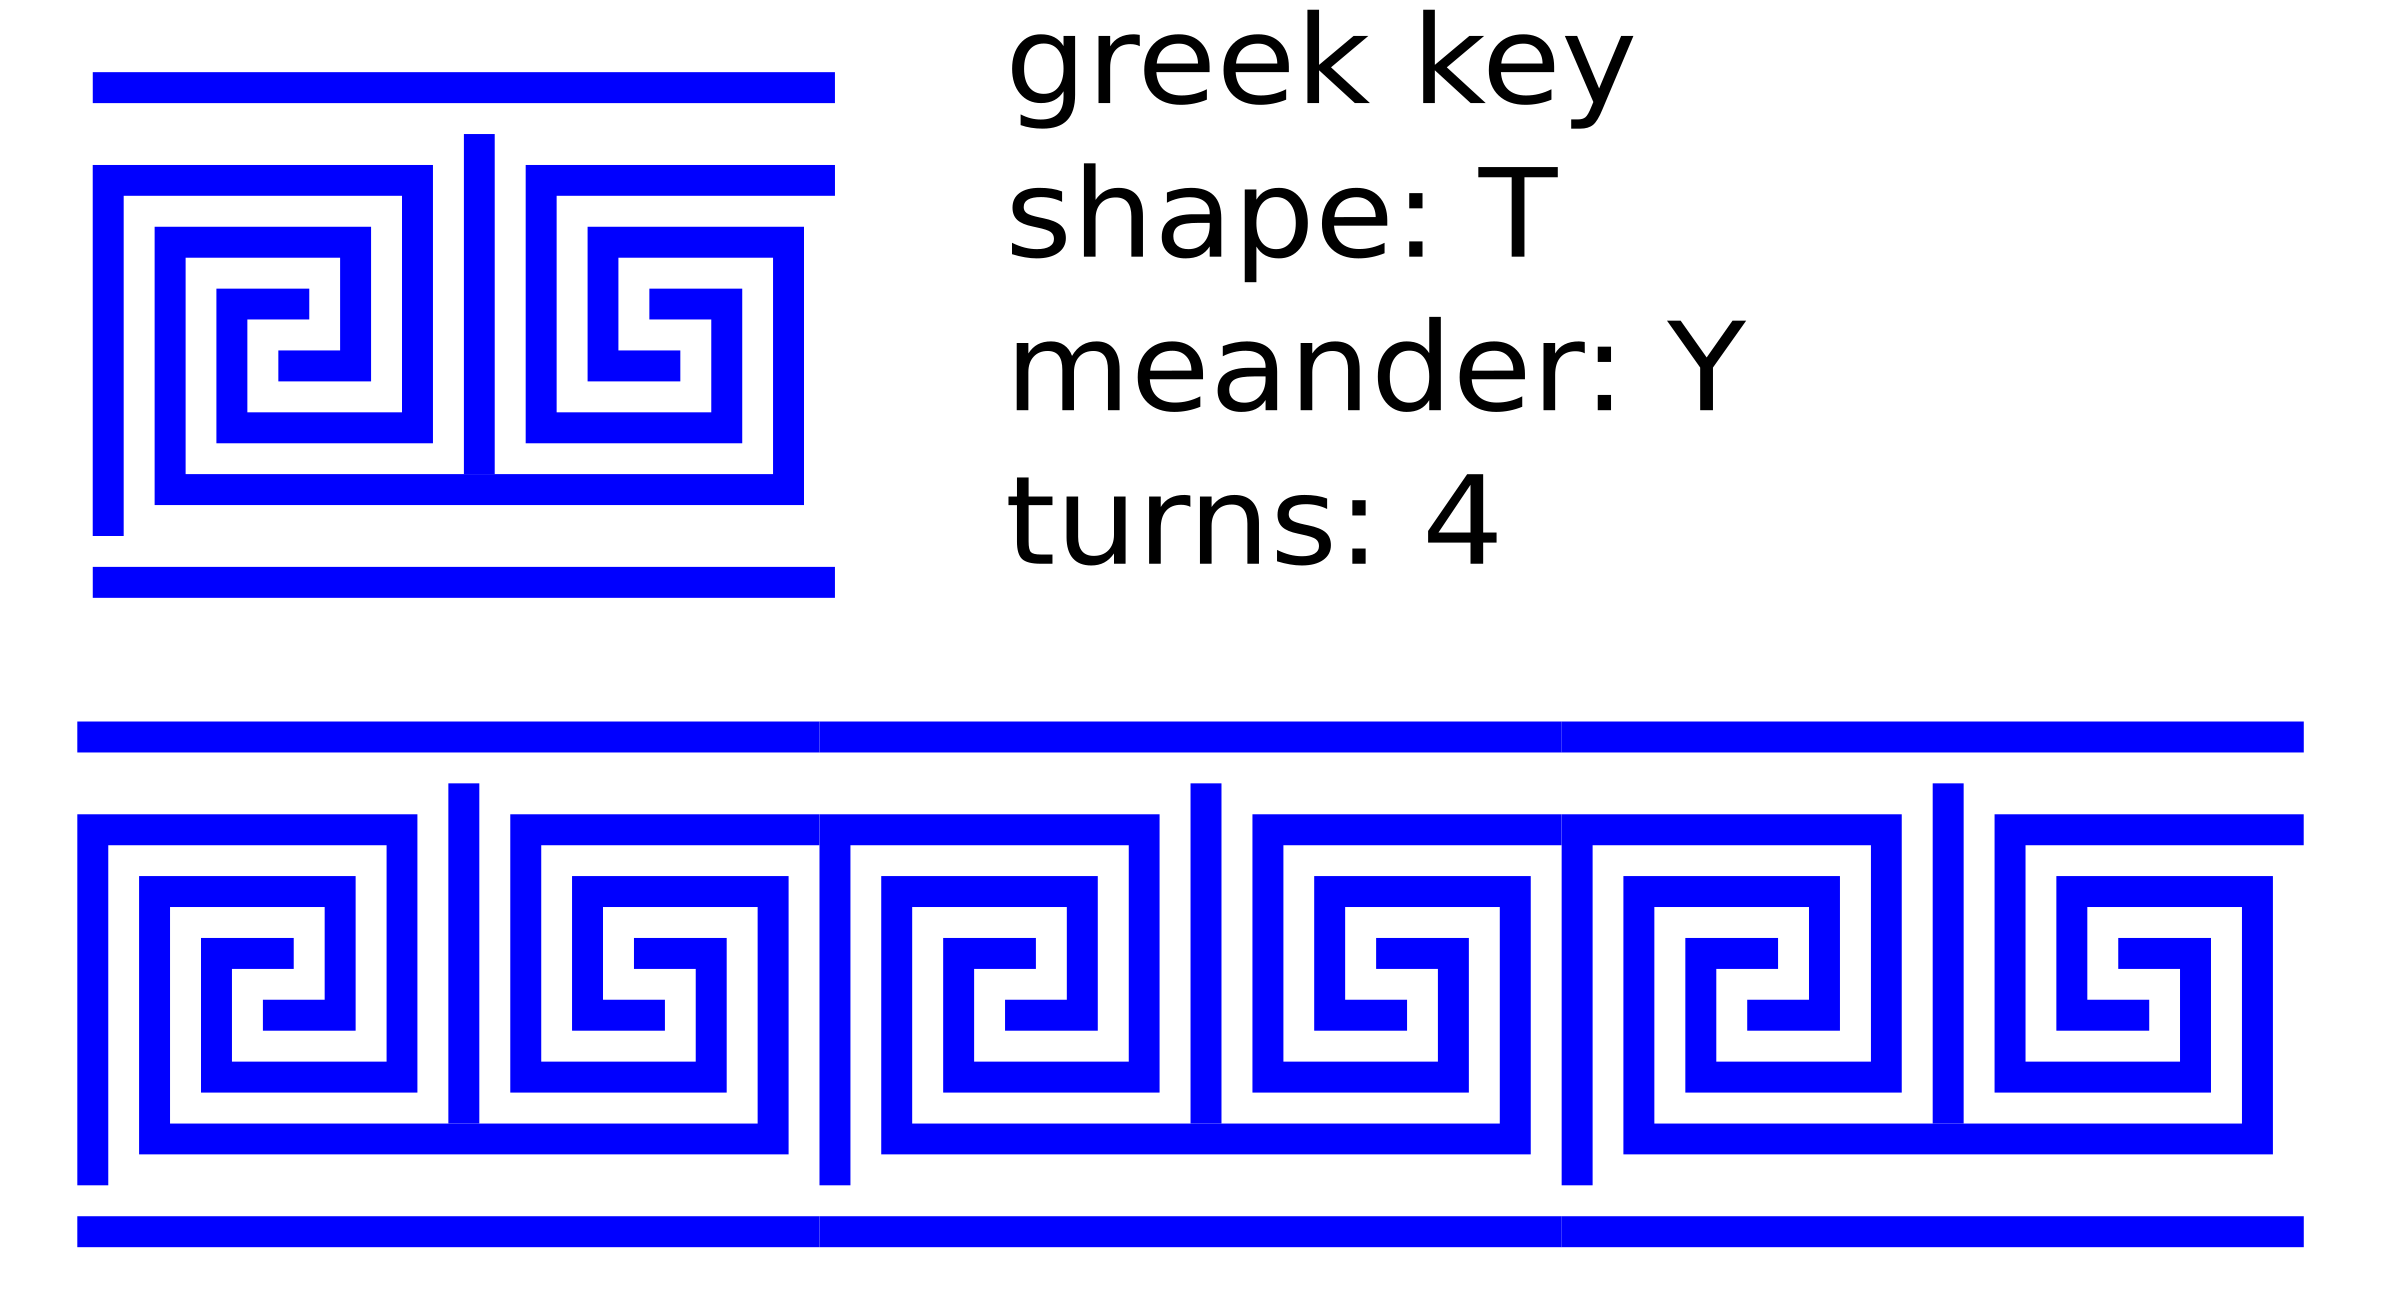 greek key T shape/4 turns/meander/lines by ovideva